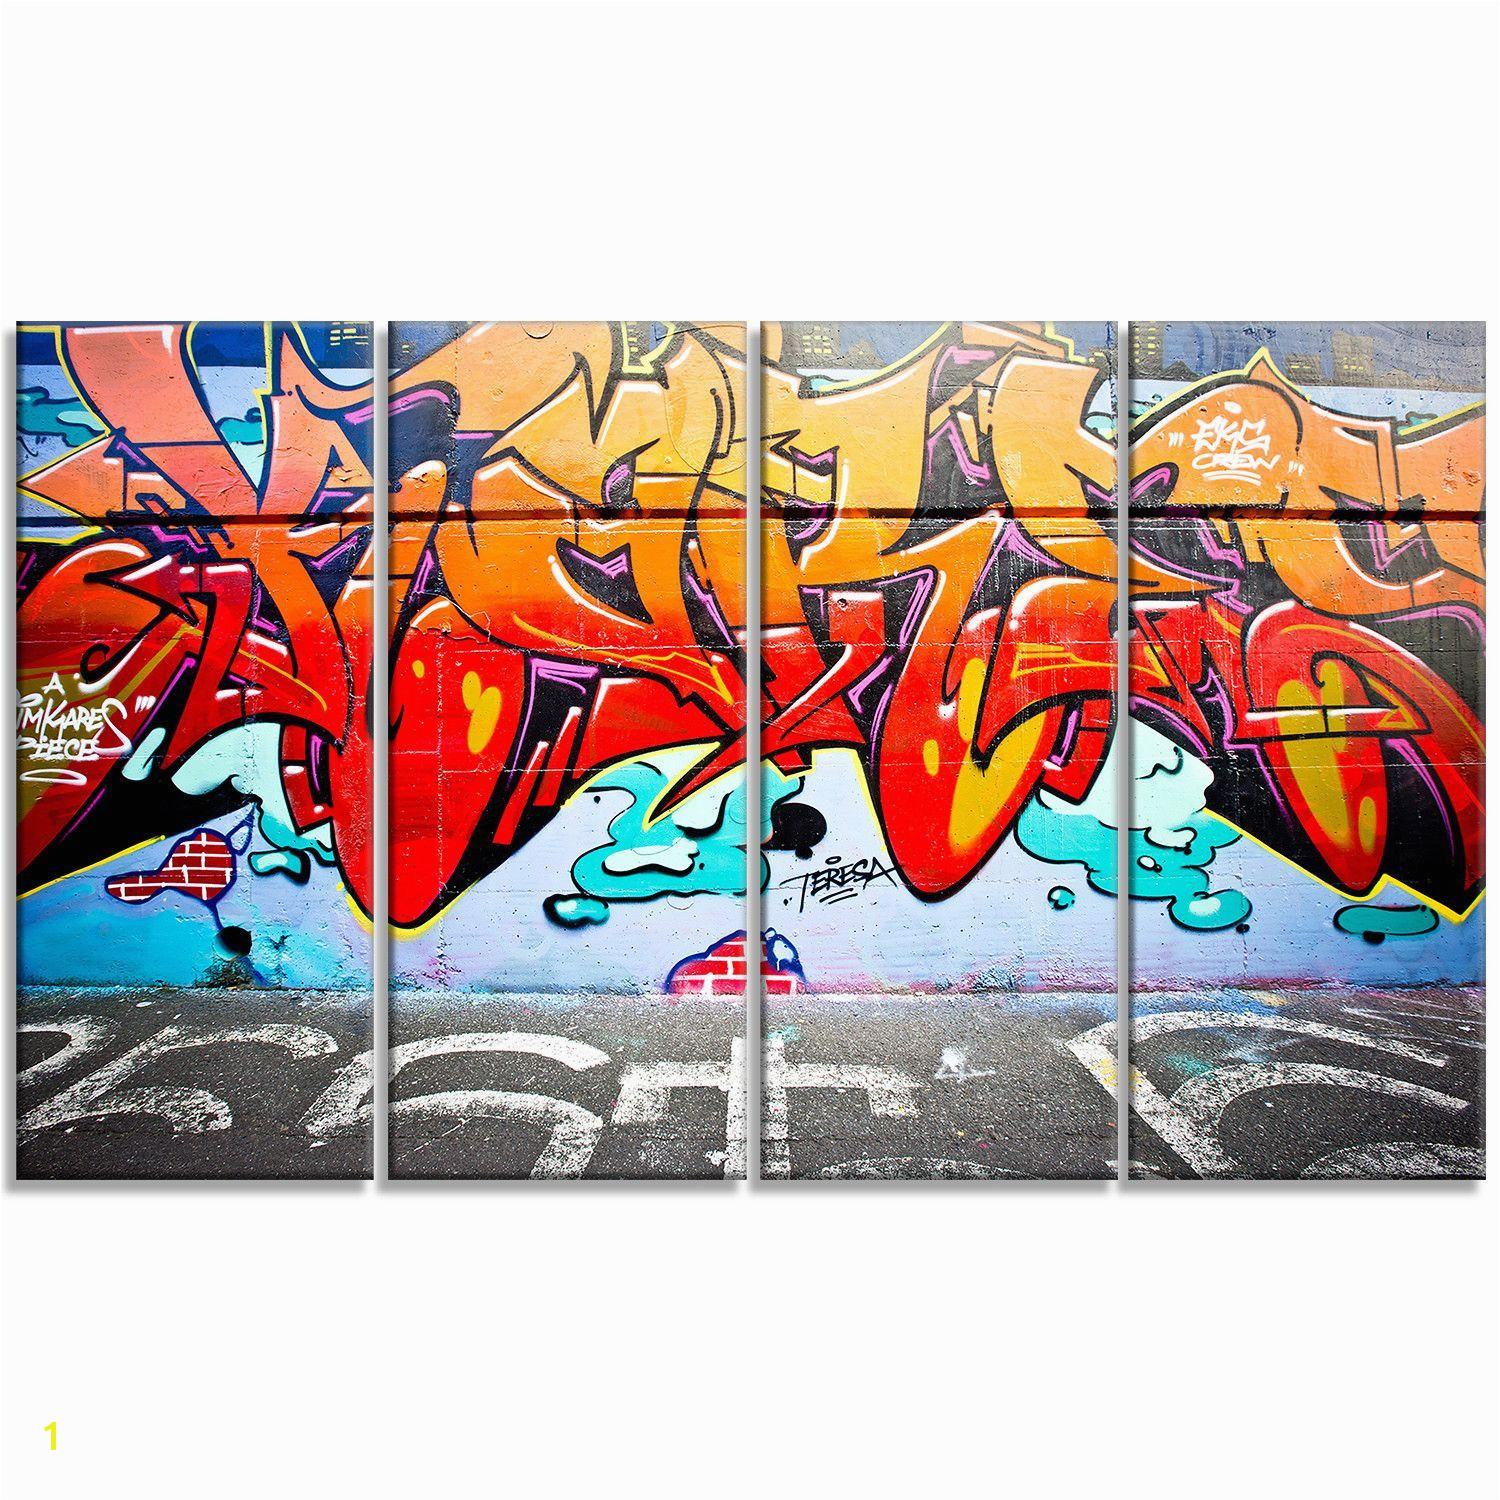 Melbourne Street Art Abstract Graffiti 4 Piece graphic Print on Wrapped Canvas Set